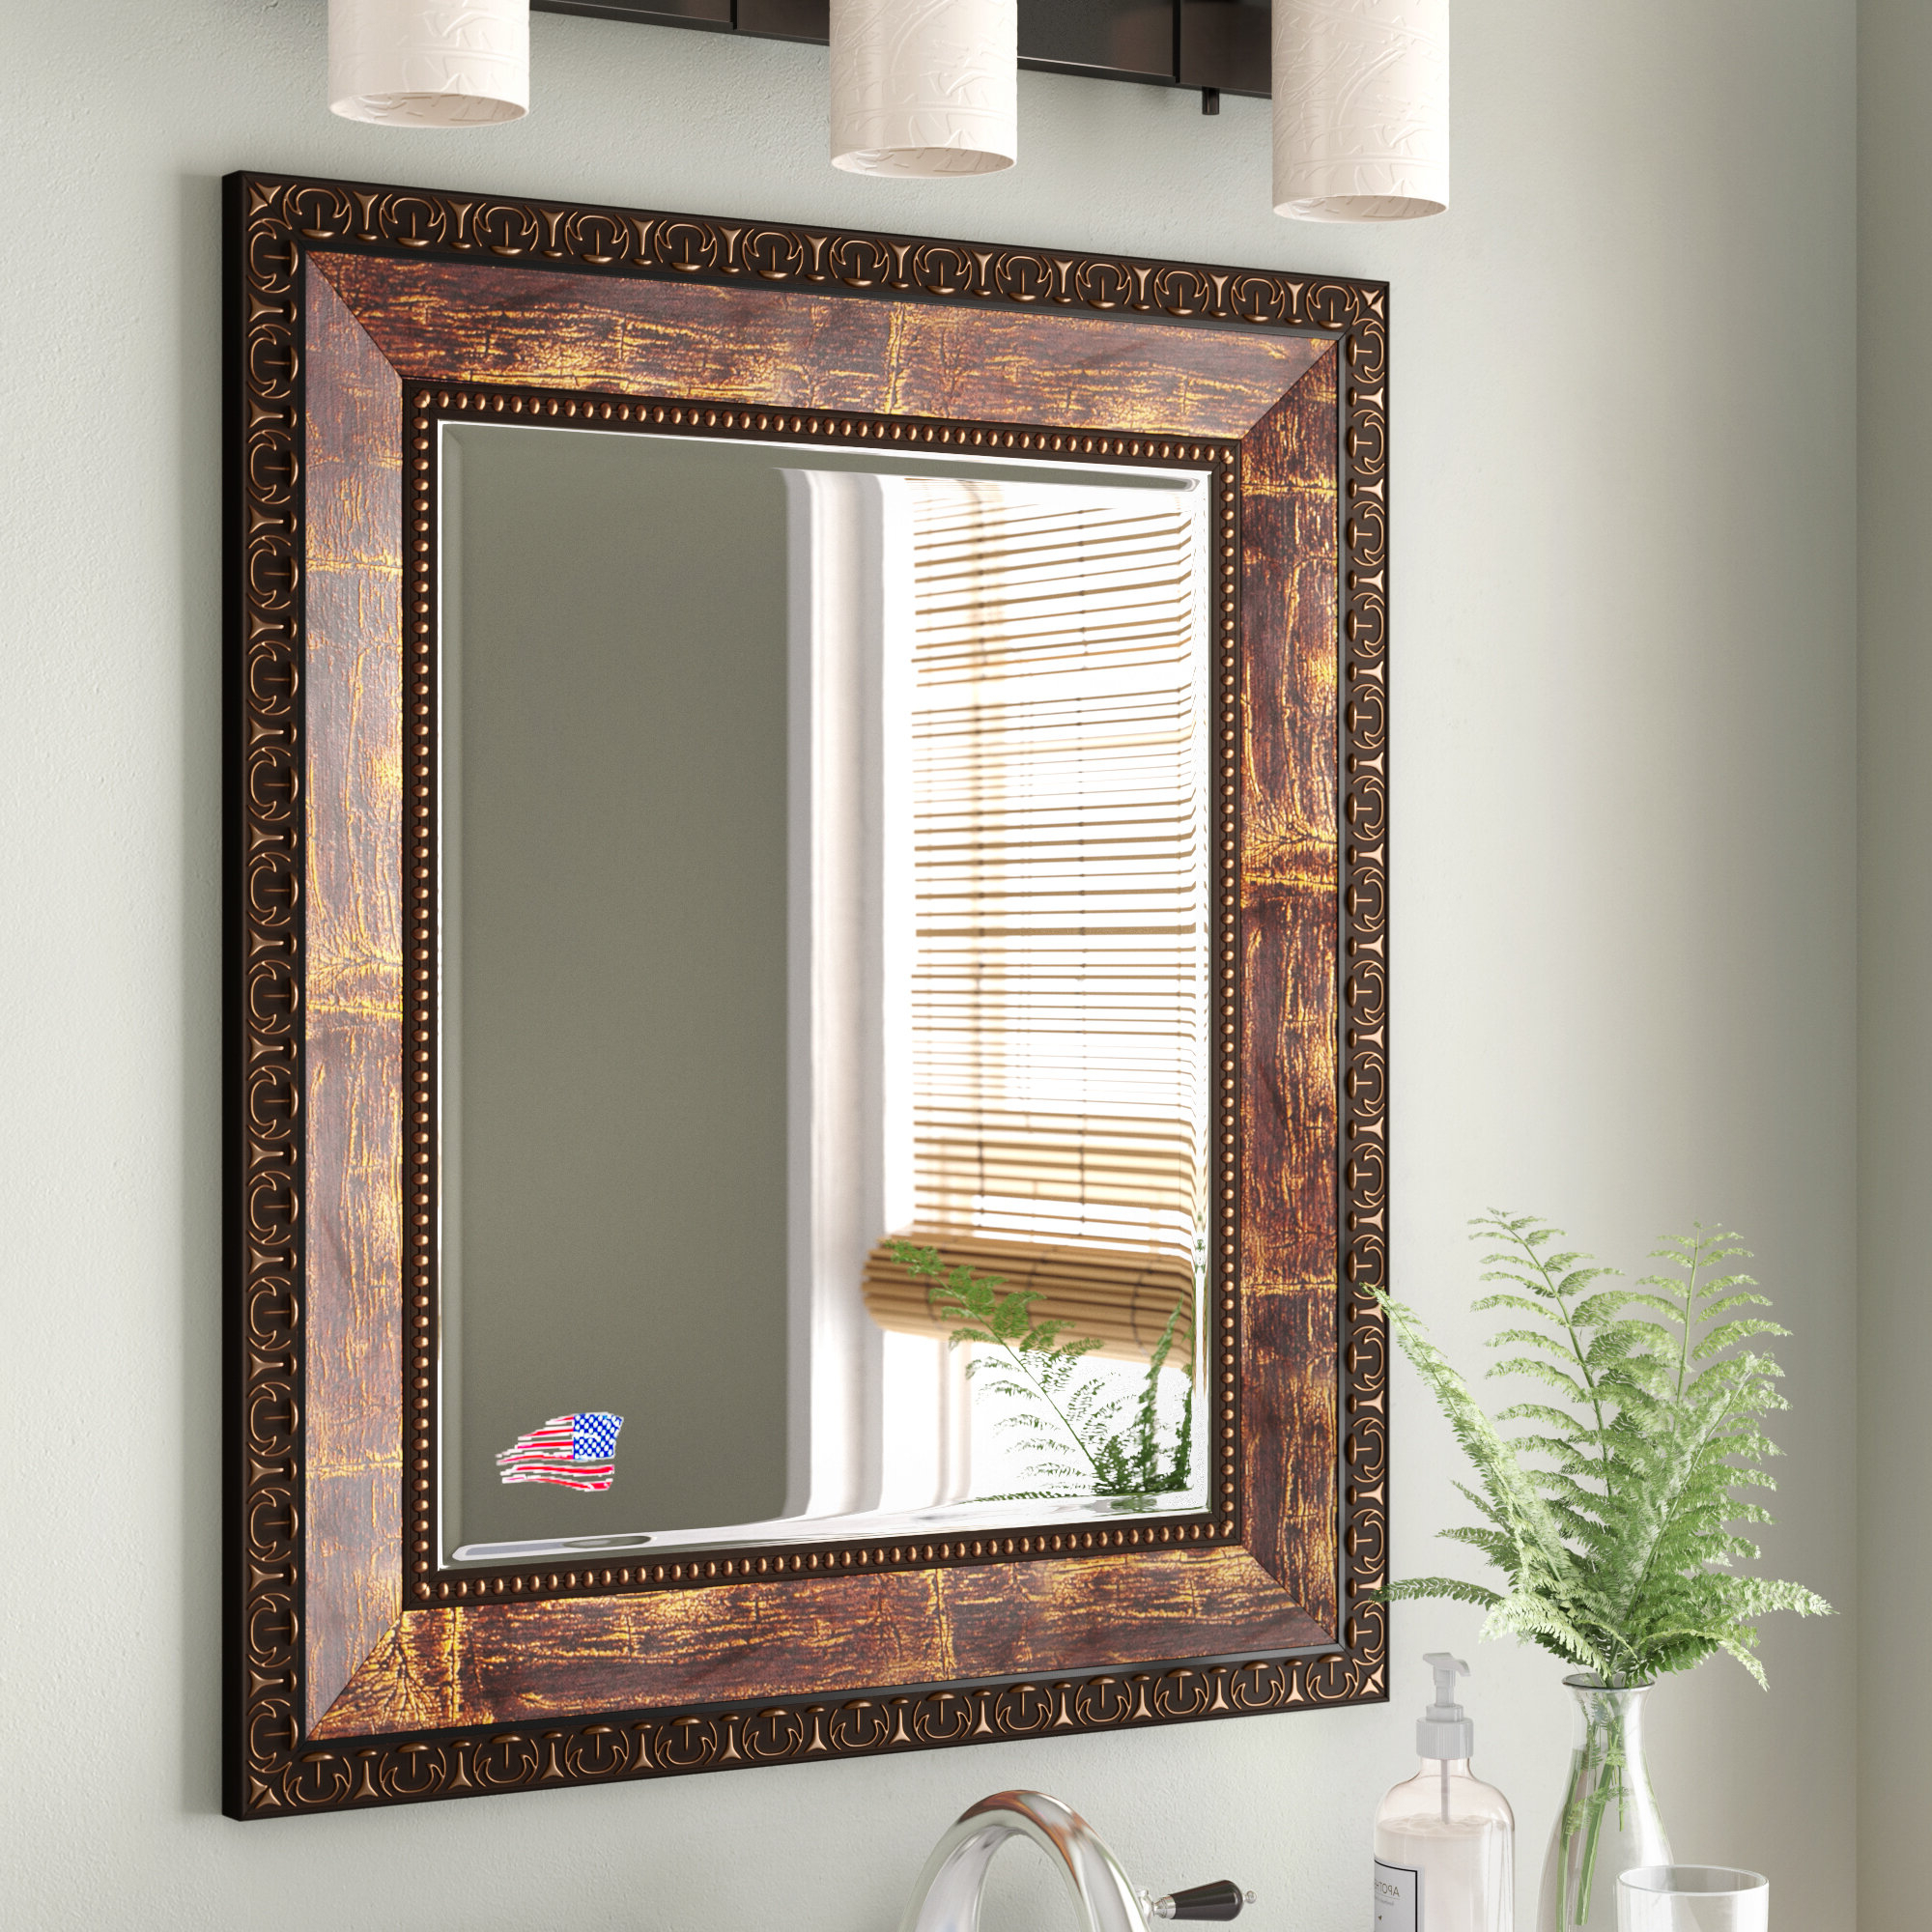 Well Liked Kristy Rectangular Beveled Vanity Mirrors In Distressed In Lofgren Rectangle Wood Traditional Wall Mirror (View 19 of 20)